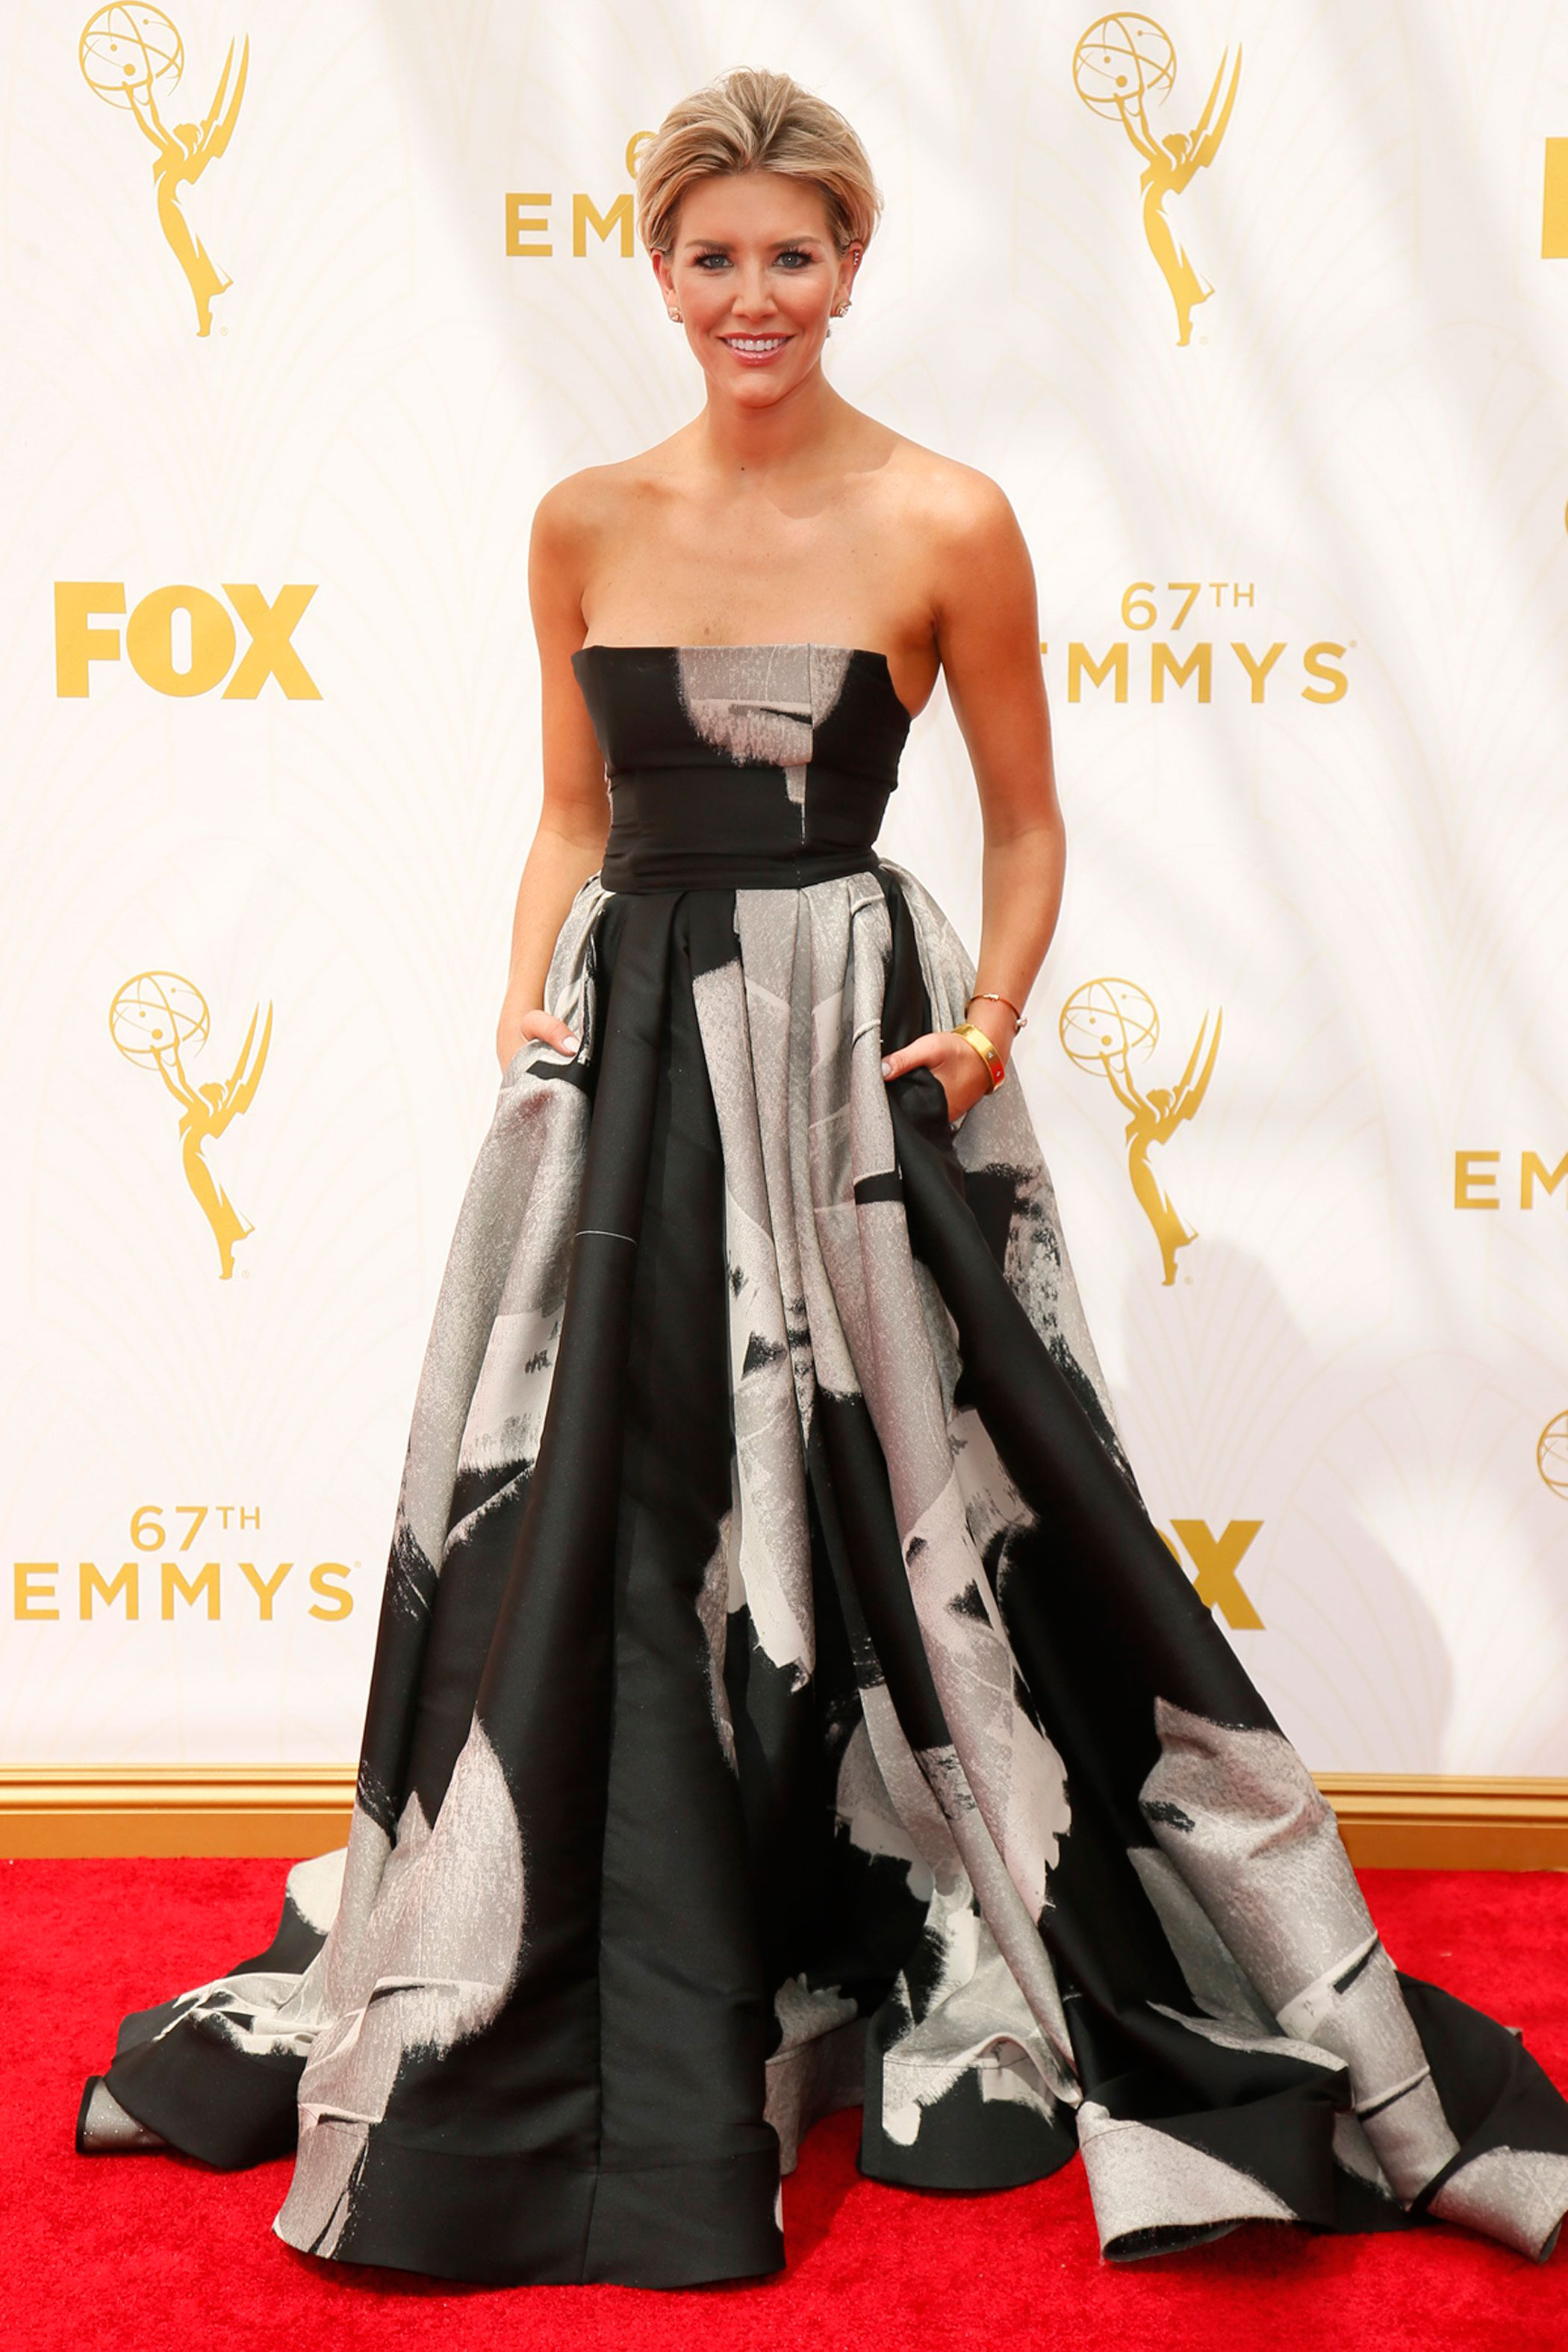 Charissa Thompson at the 67th Emmy Award on Sept. 20, 2015 in Los Angeles.